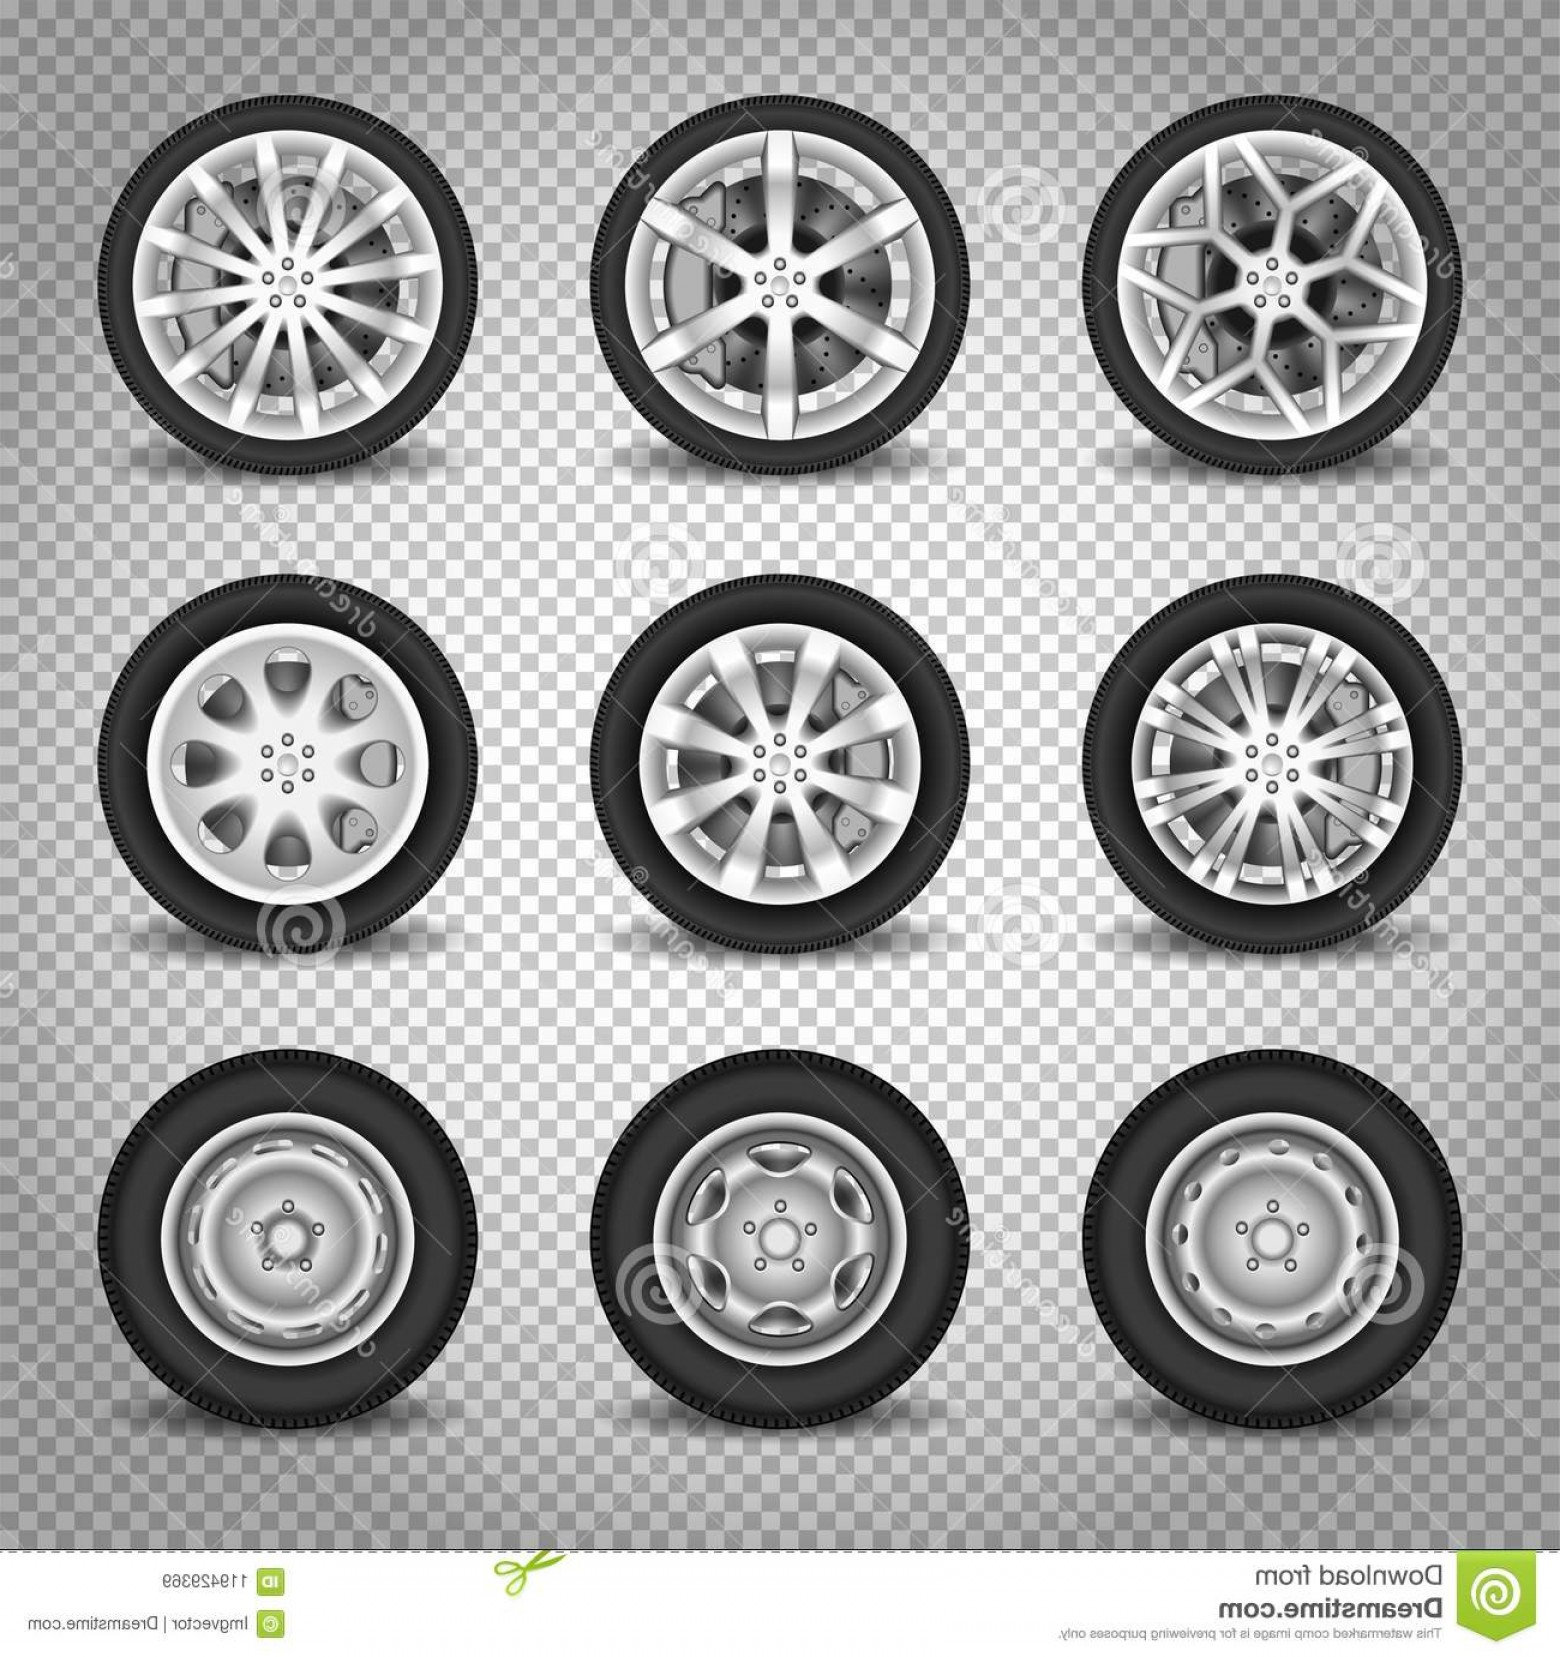 MB Wheels Vector Chrome: Car Wheels Set Vector Transparent Background Isolated Black Automobile Tyre Image